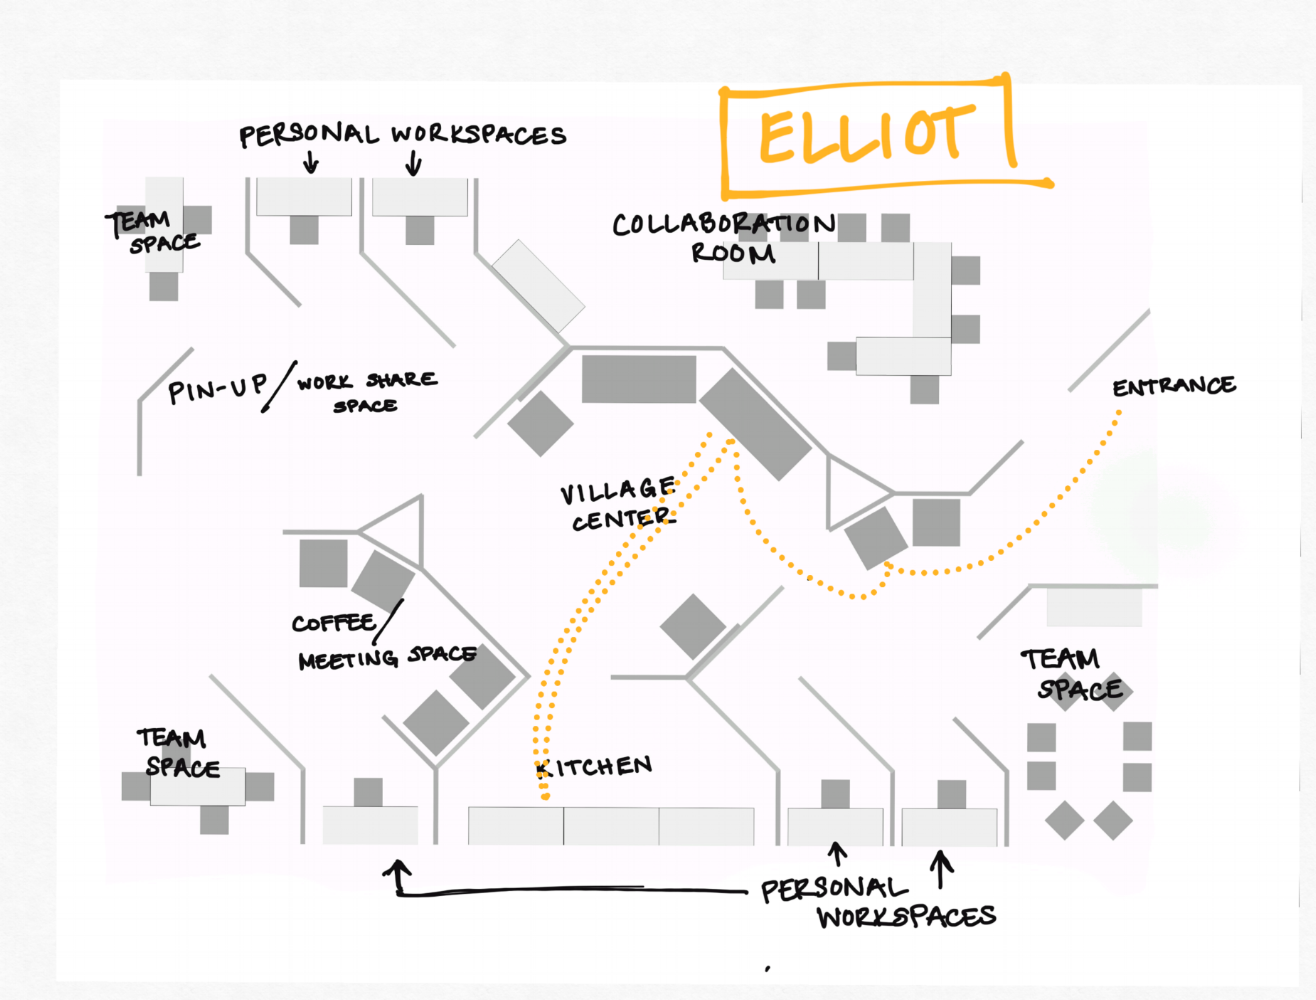 Elliot prefers a relaxed work environment. His work includes either using a laptop or making phone calls, so he likes comfortable chairs and requires no table surfaces. When he makes phone calls he likes to be able to step off somewhere less busy.